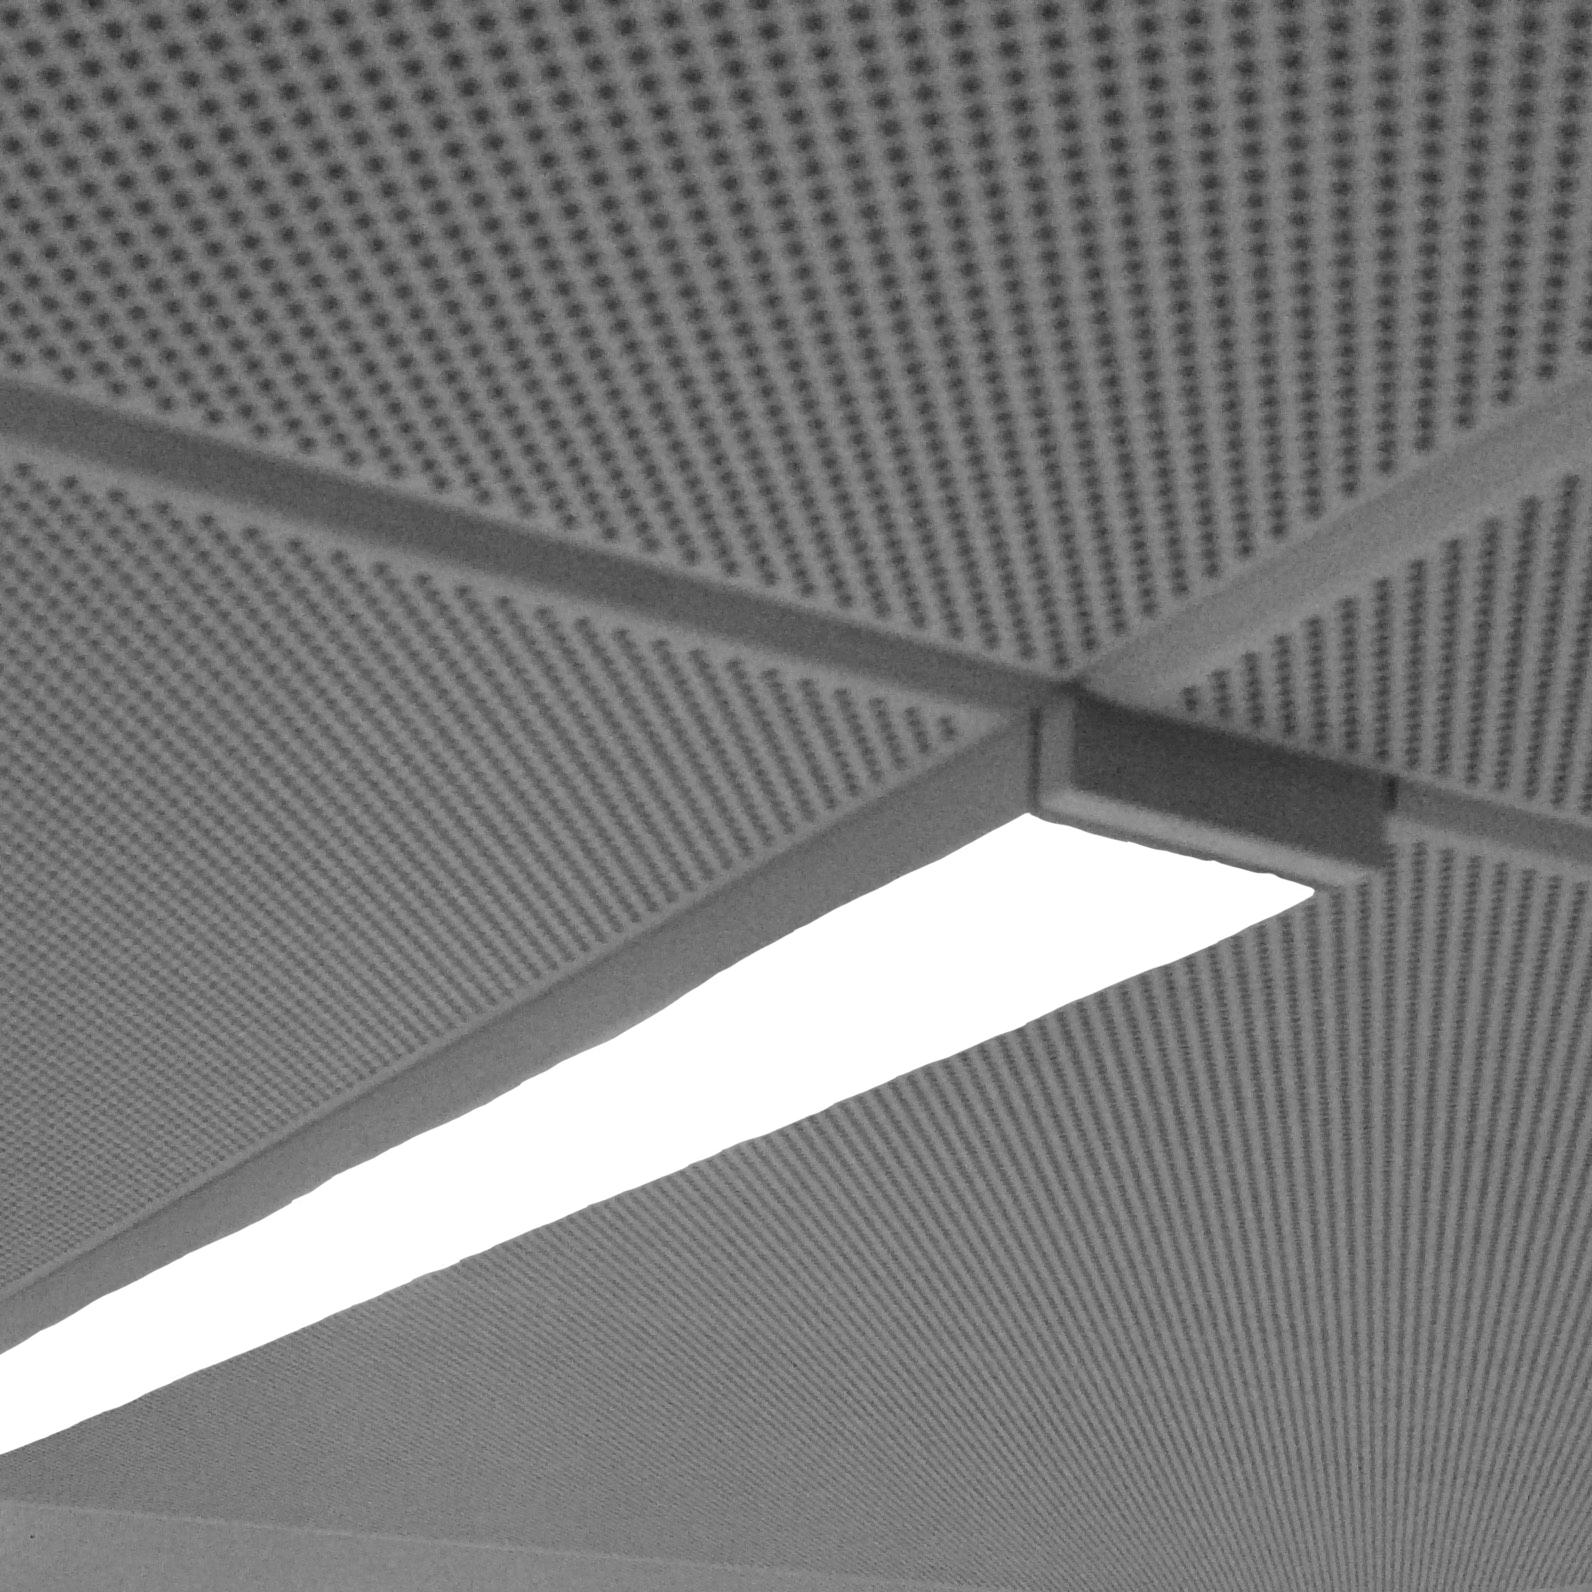 Systeemplafond Led Verlichting Slimline Stoal